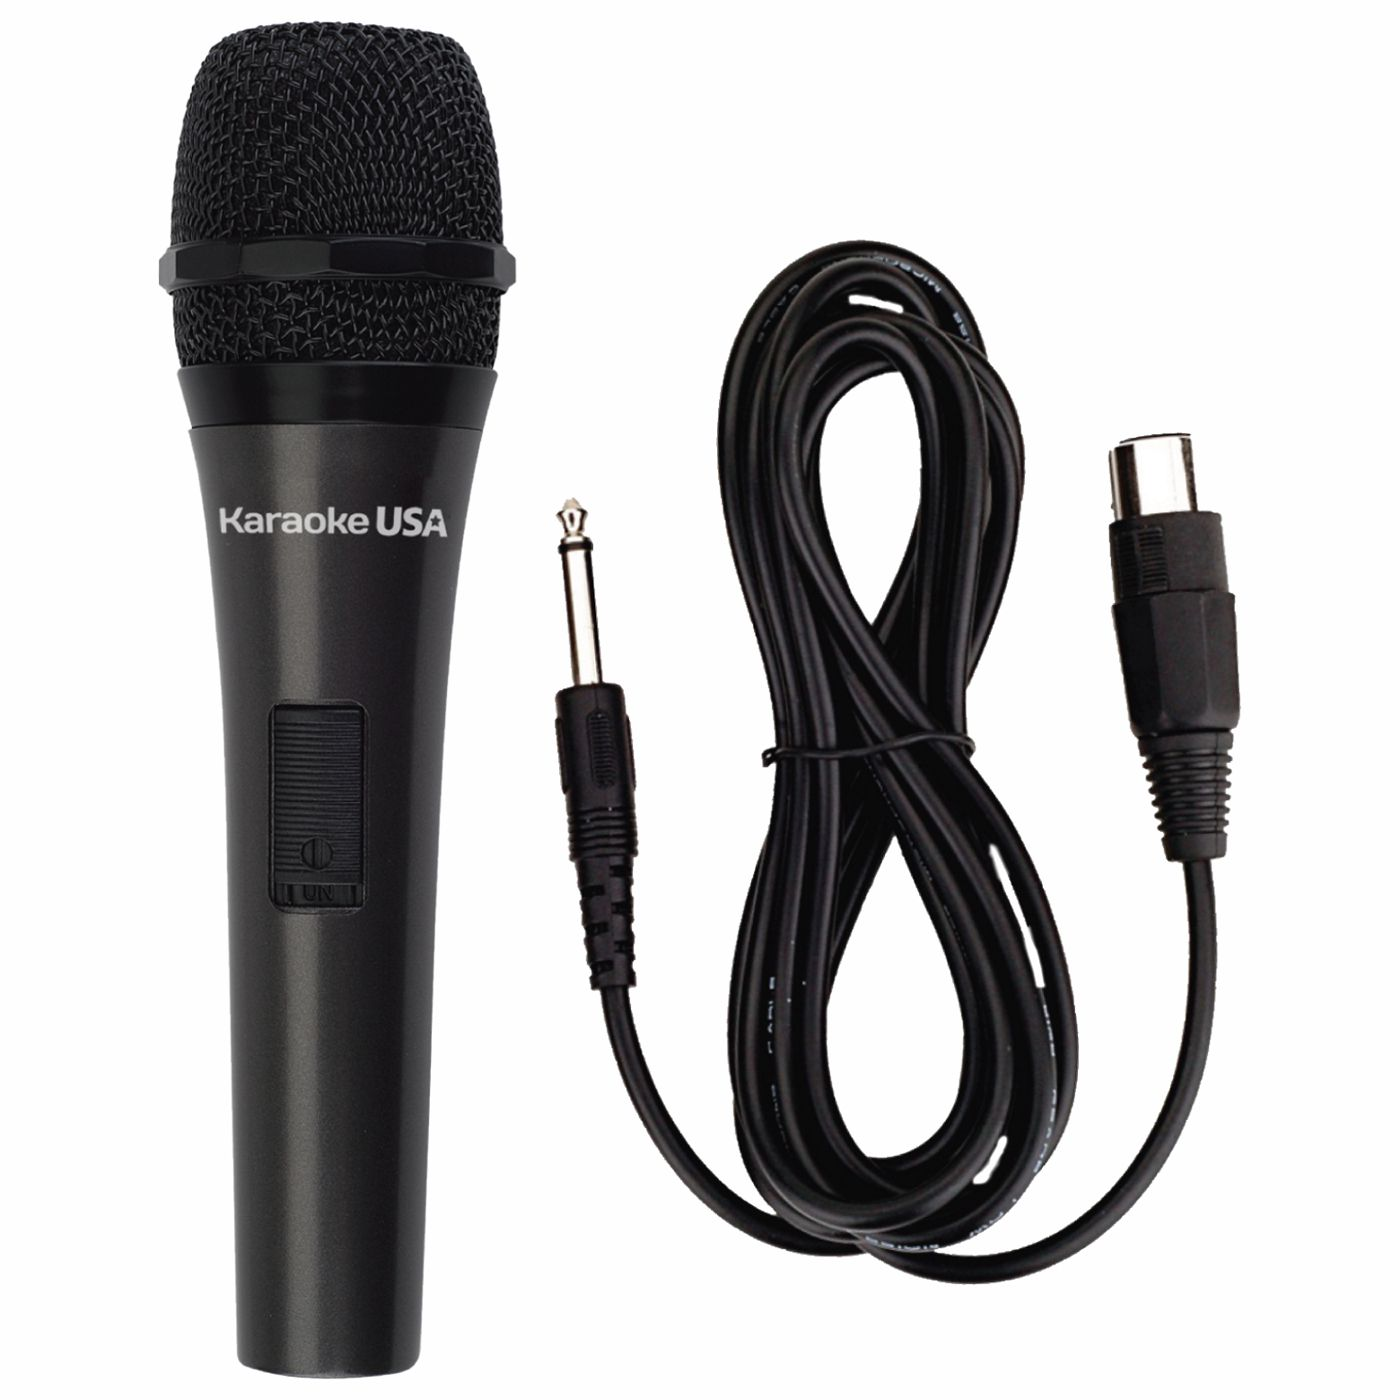 M189 - Professional Dynamic Microphone (Detachable Cord)